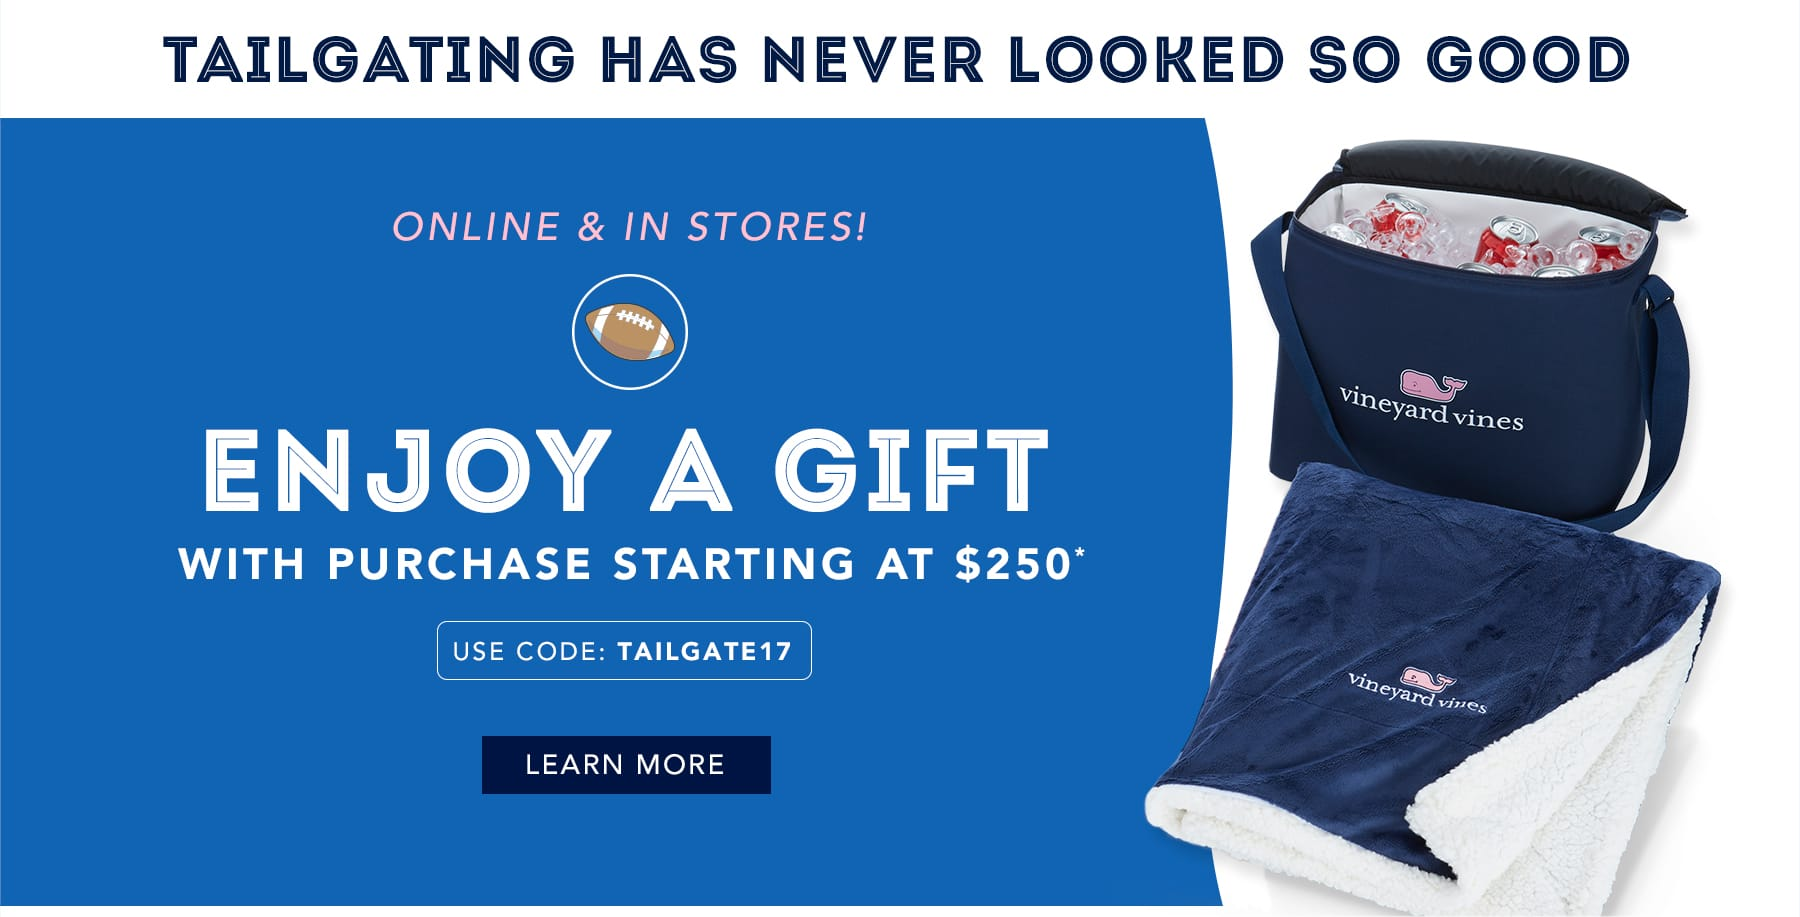 Tailgating has never looked so good. Online & in stores. Enjoy a gift with purchase starting at $250*. Use Code: TAILGATE17. Learn More.